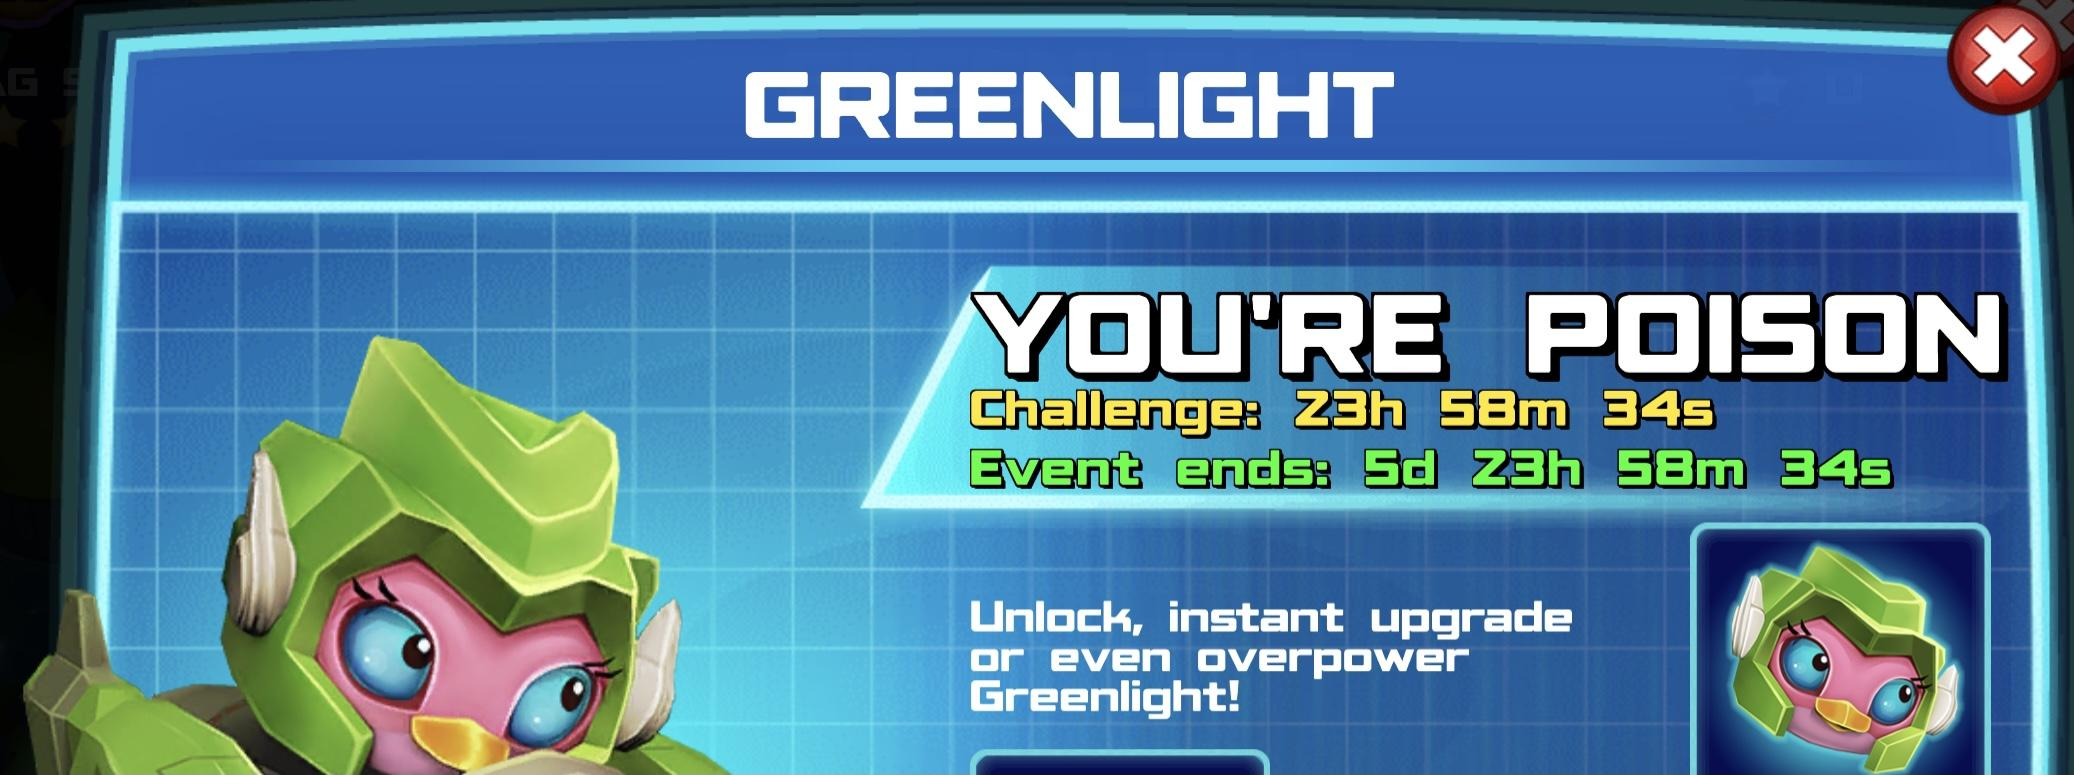 The event banner for Greenlight